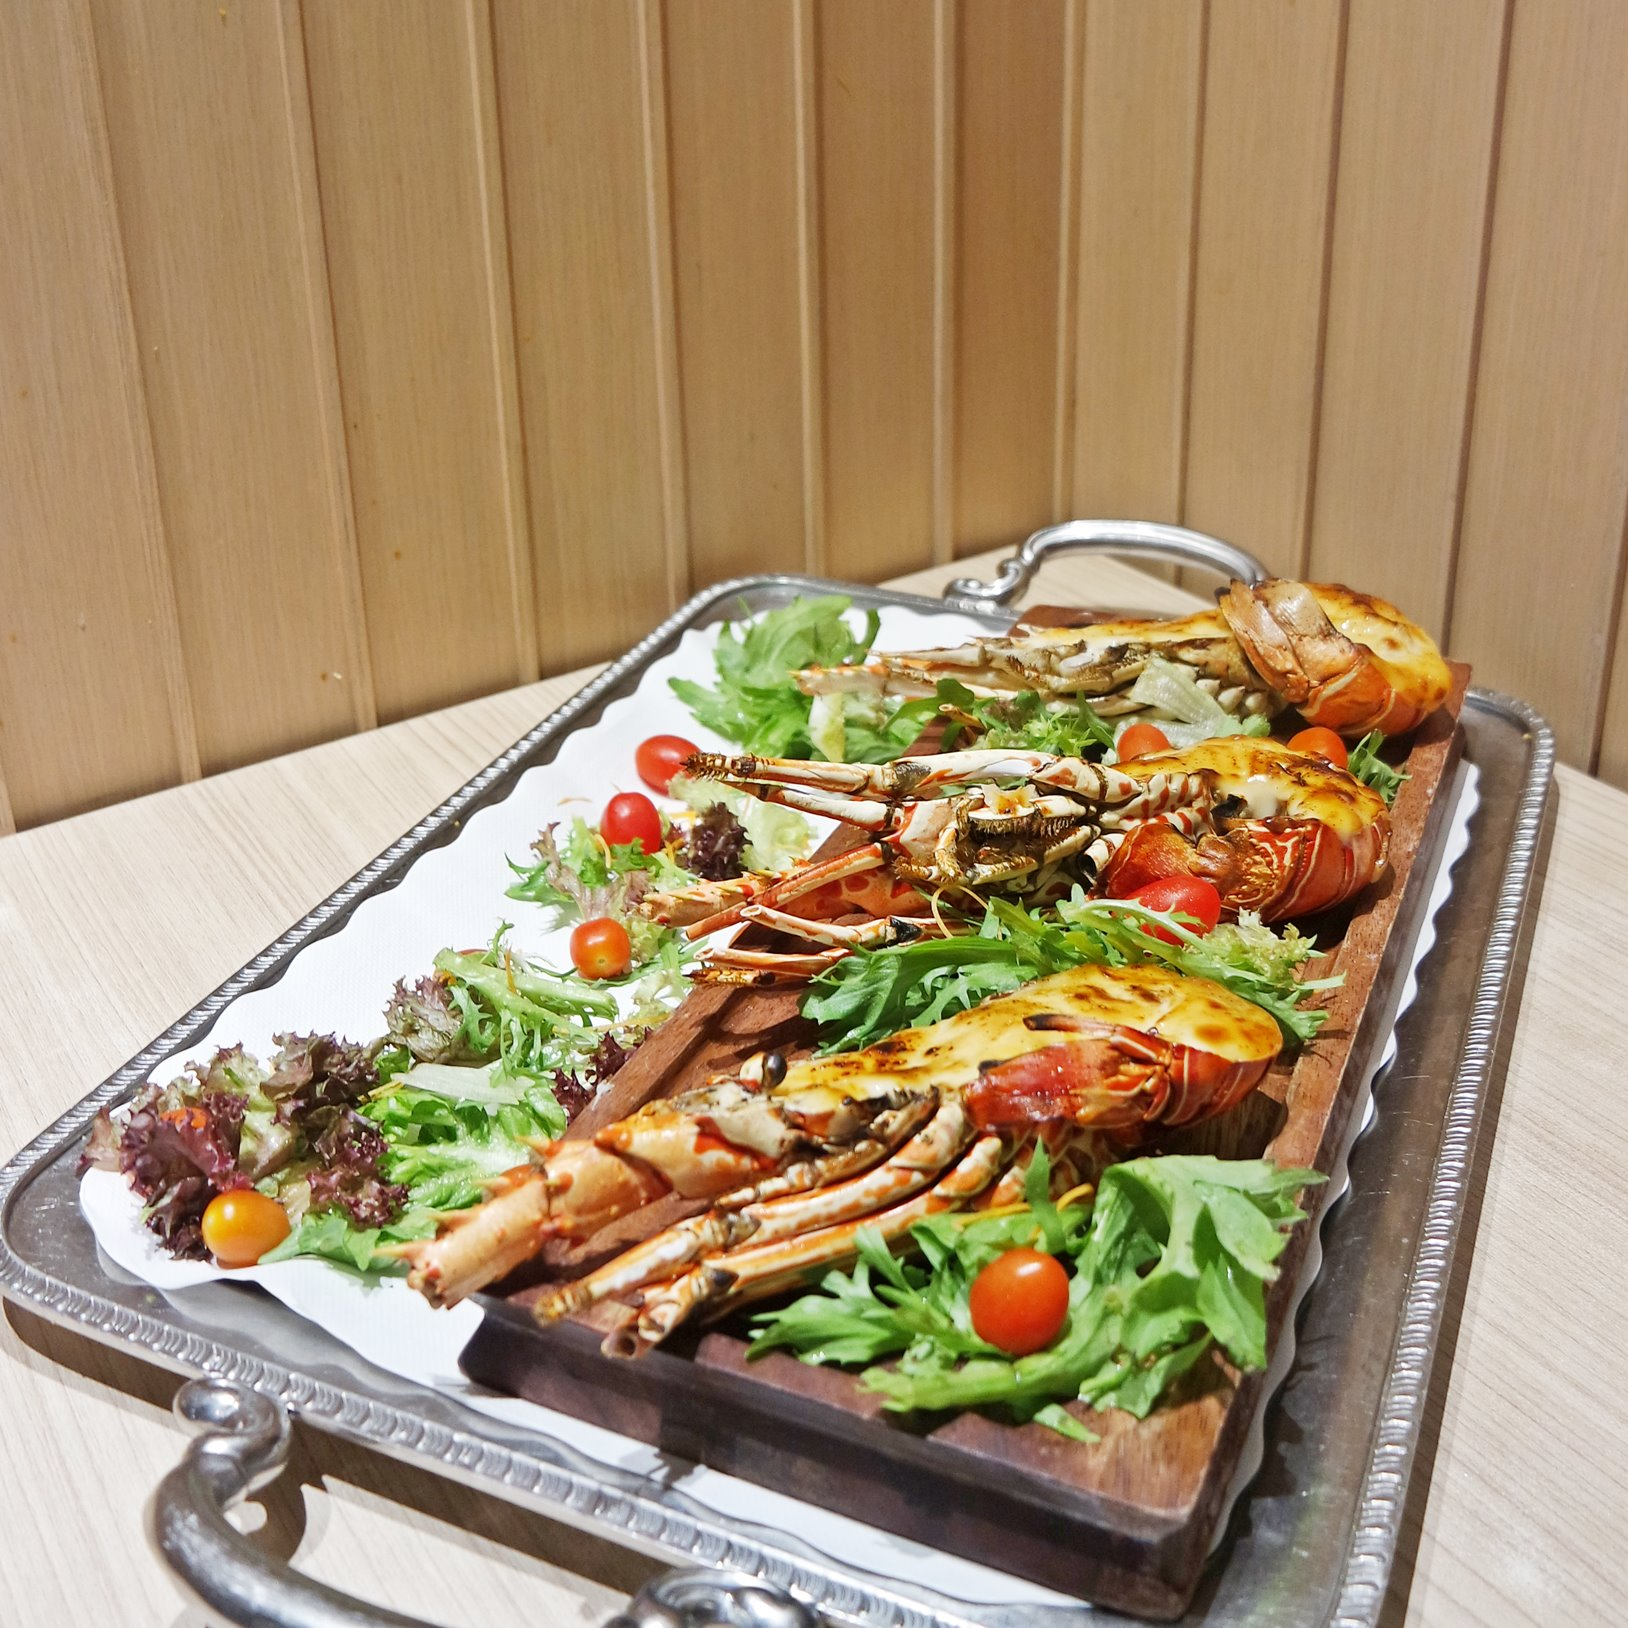 Flame-grilled Lobster Mentaiko